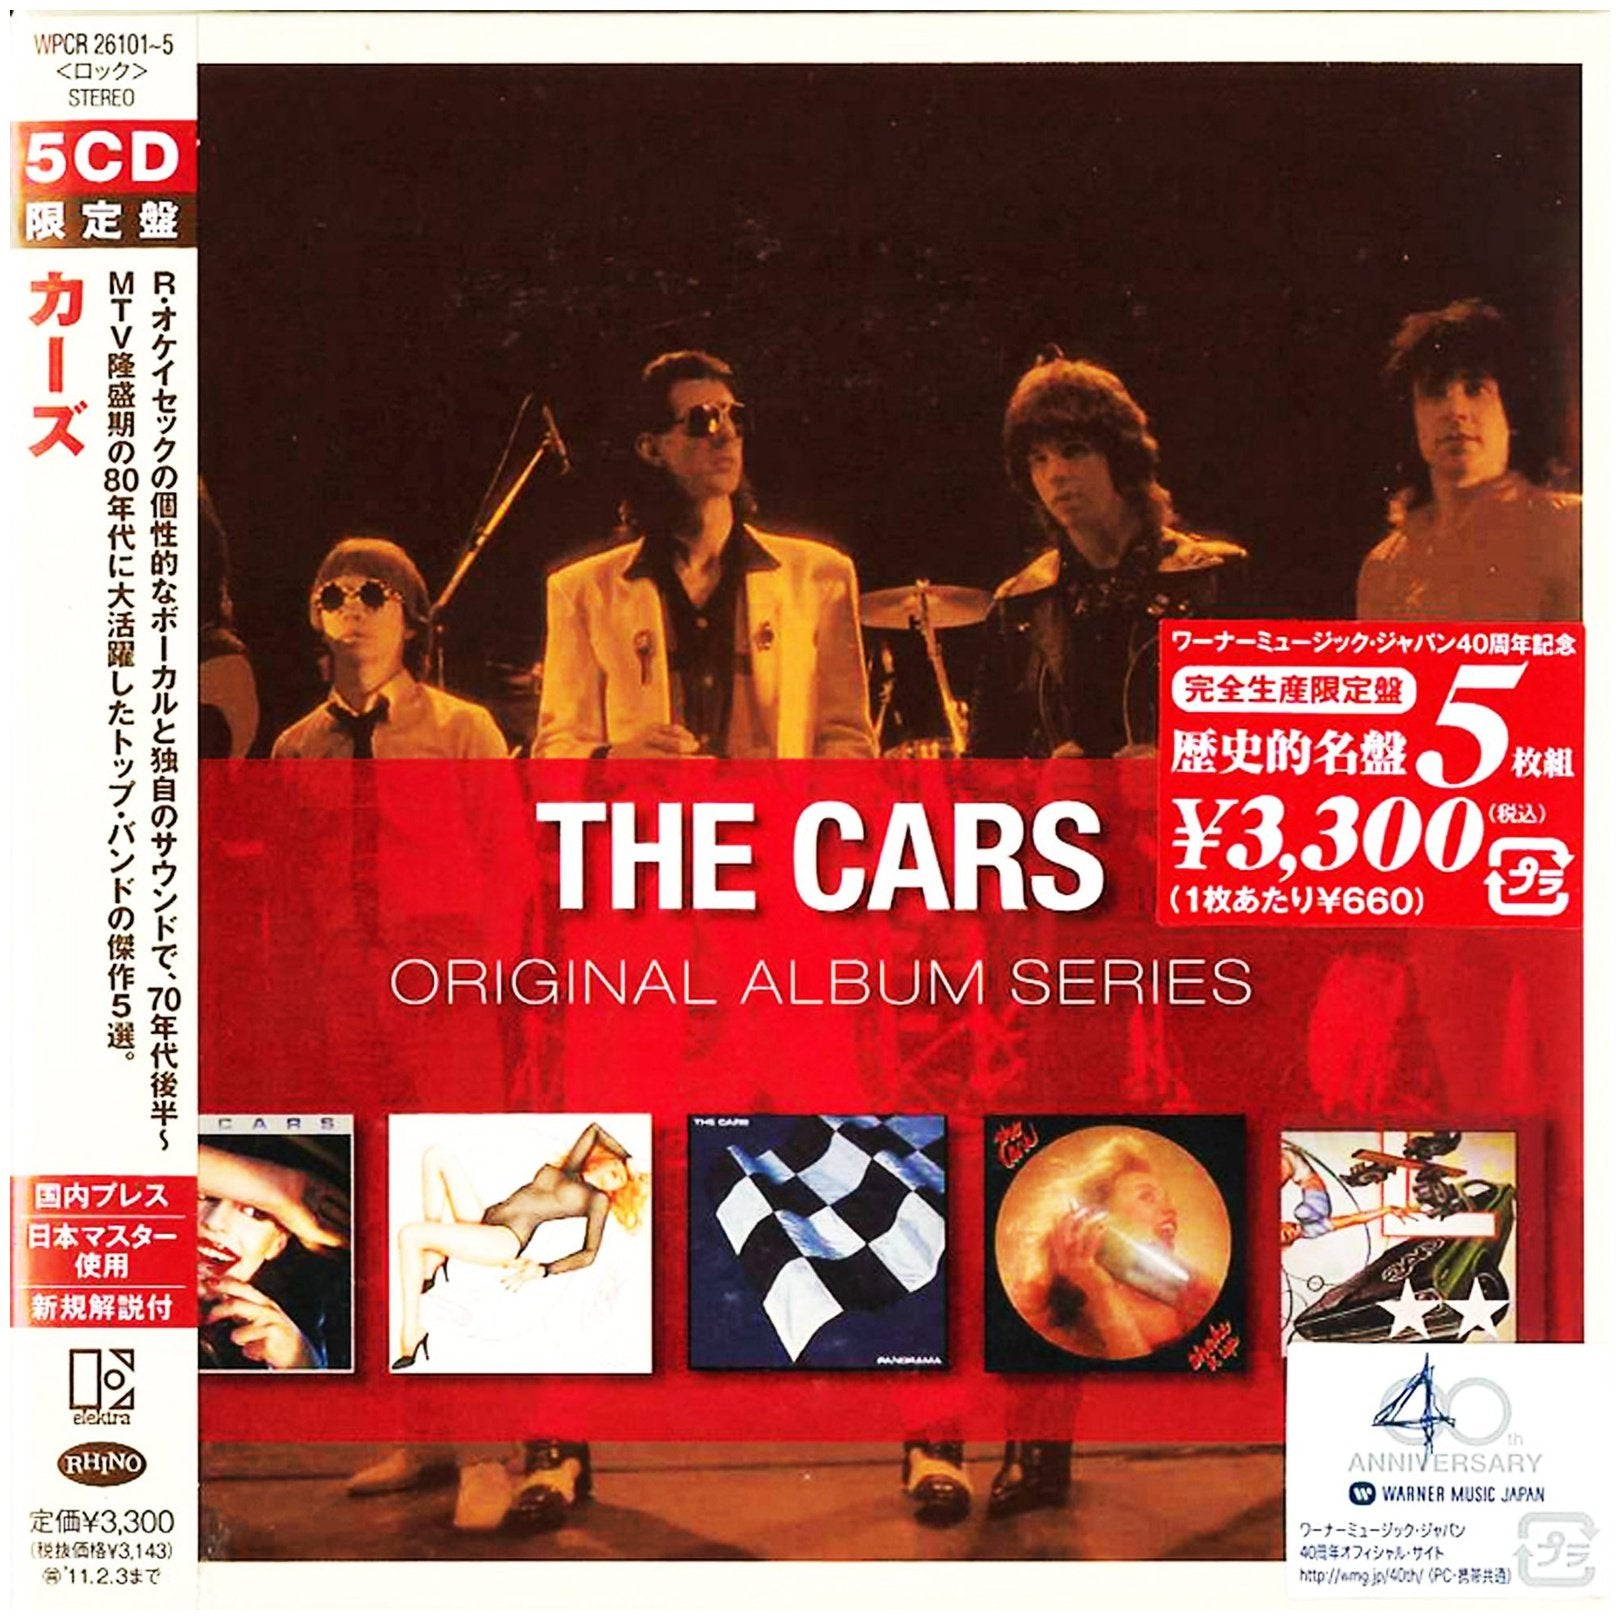 Cars - The Cars - Original Album Series - Japan - Wpcr-26101-5 - 5 Cd Box Set